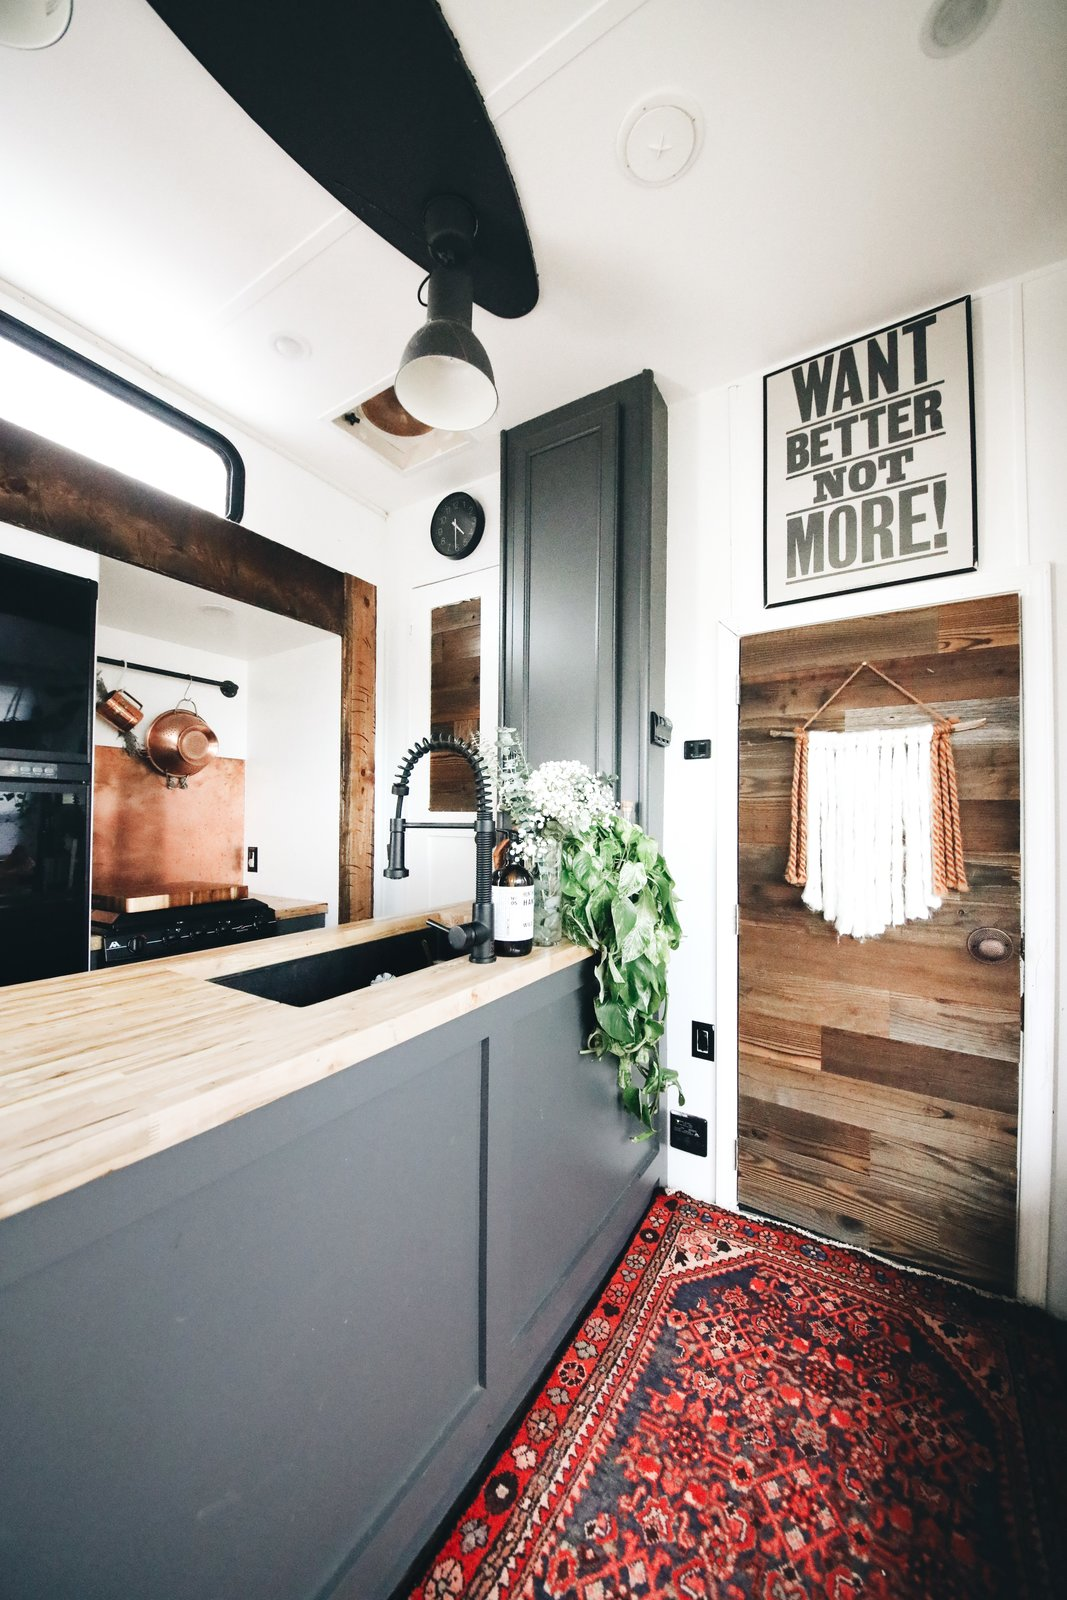 """Kitchen, Ceiling, Rug, Wood, and Undermount """"I wanted a blank slate that was versatile so I could switch it up, and change things around as we all grew in our tiny space,"""" she says  Kitchen Rug Ceiling Undermount Photos from A Couple Transform a Toy Hauler Into a Mobile Tiny Home For $6K"""